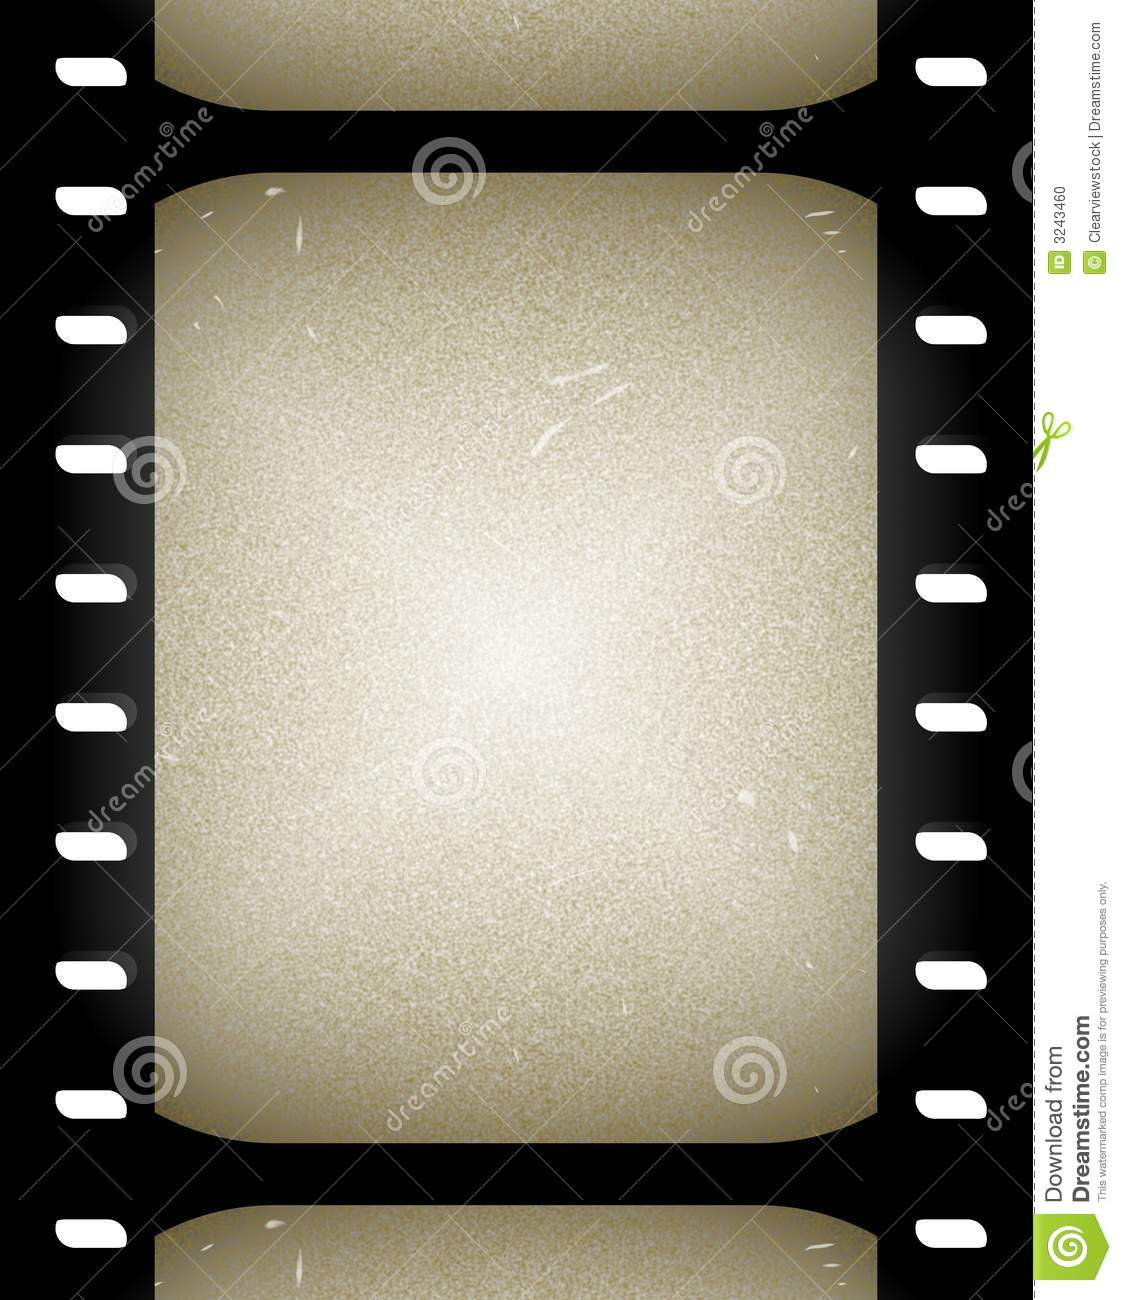 Old Film Or Movie Frames Illustration 3243460 - Megapixl